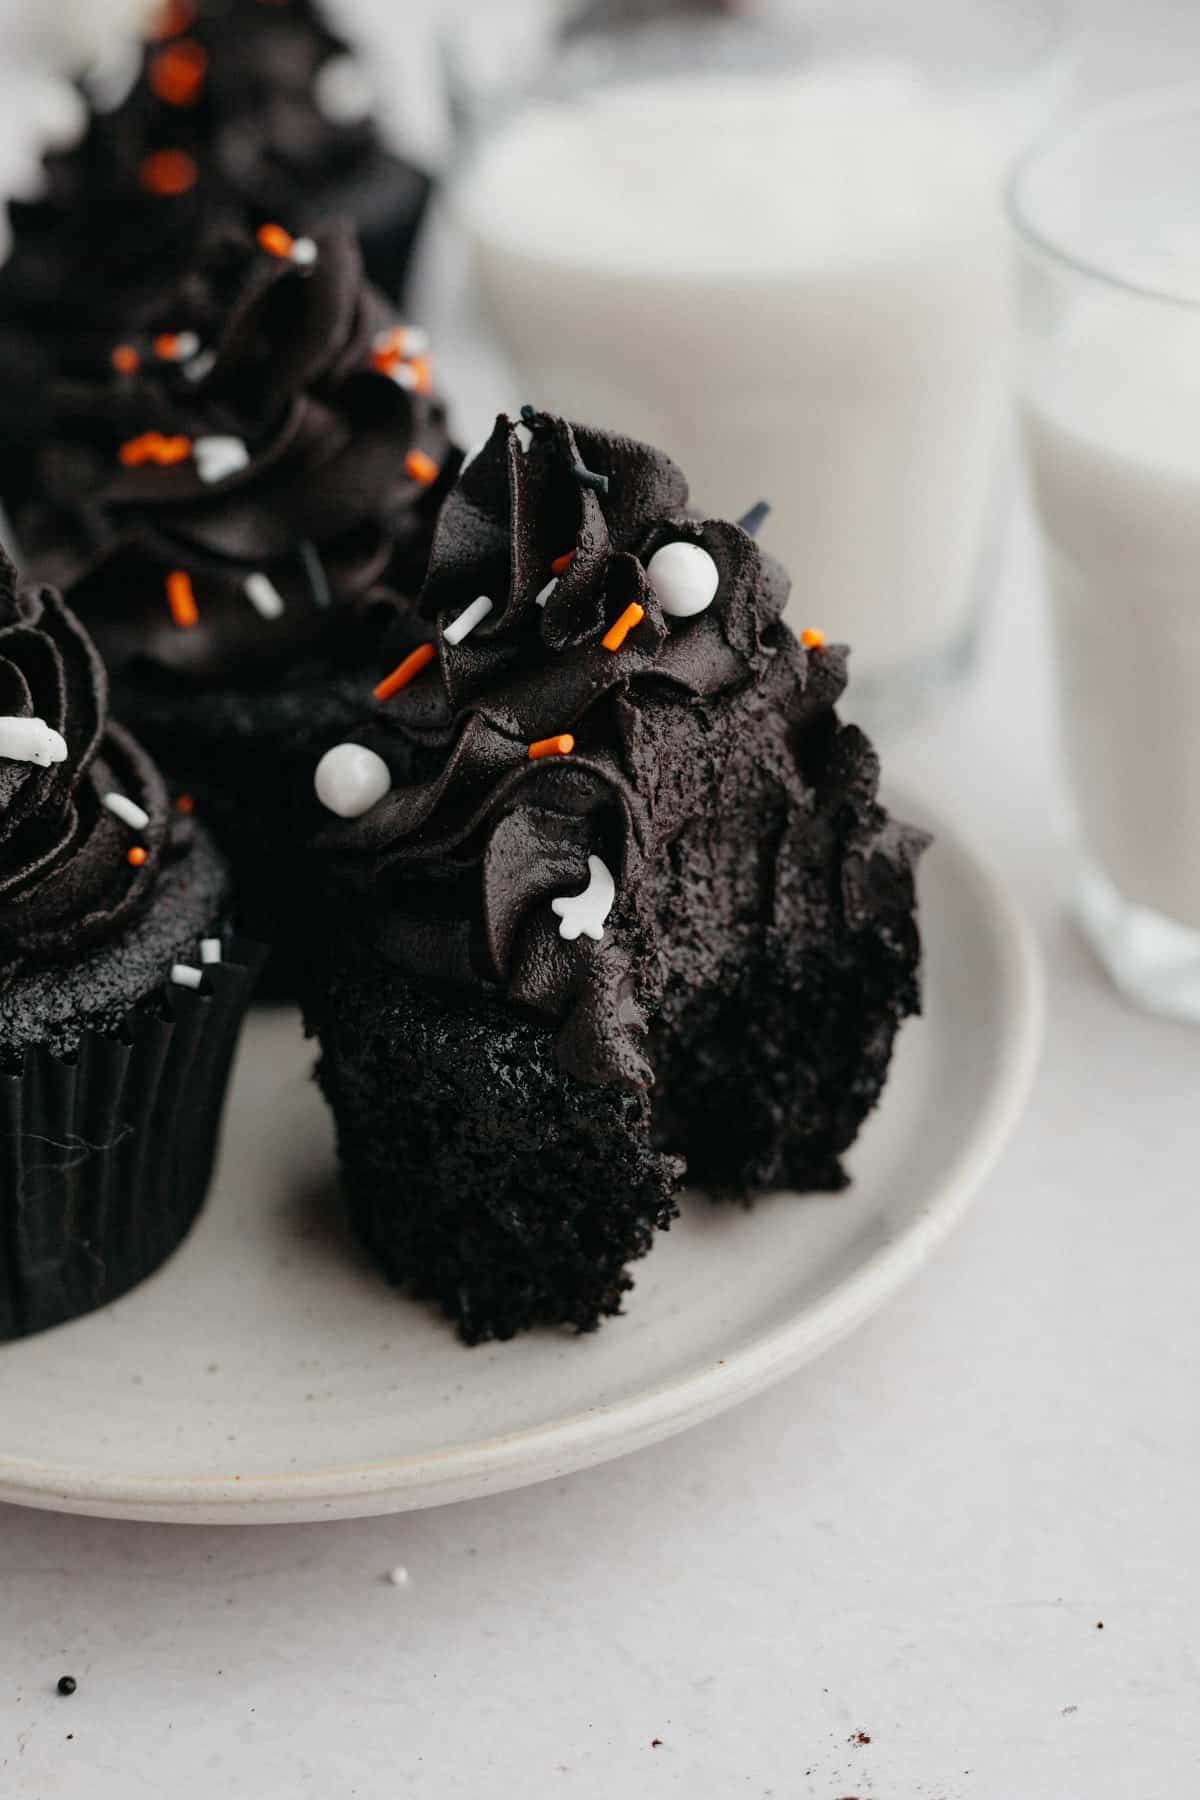 A black velvet cupcake with a bite taken out of it.